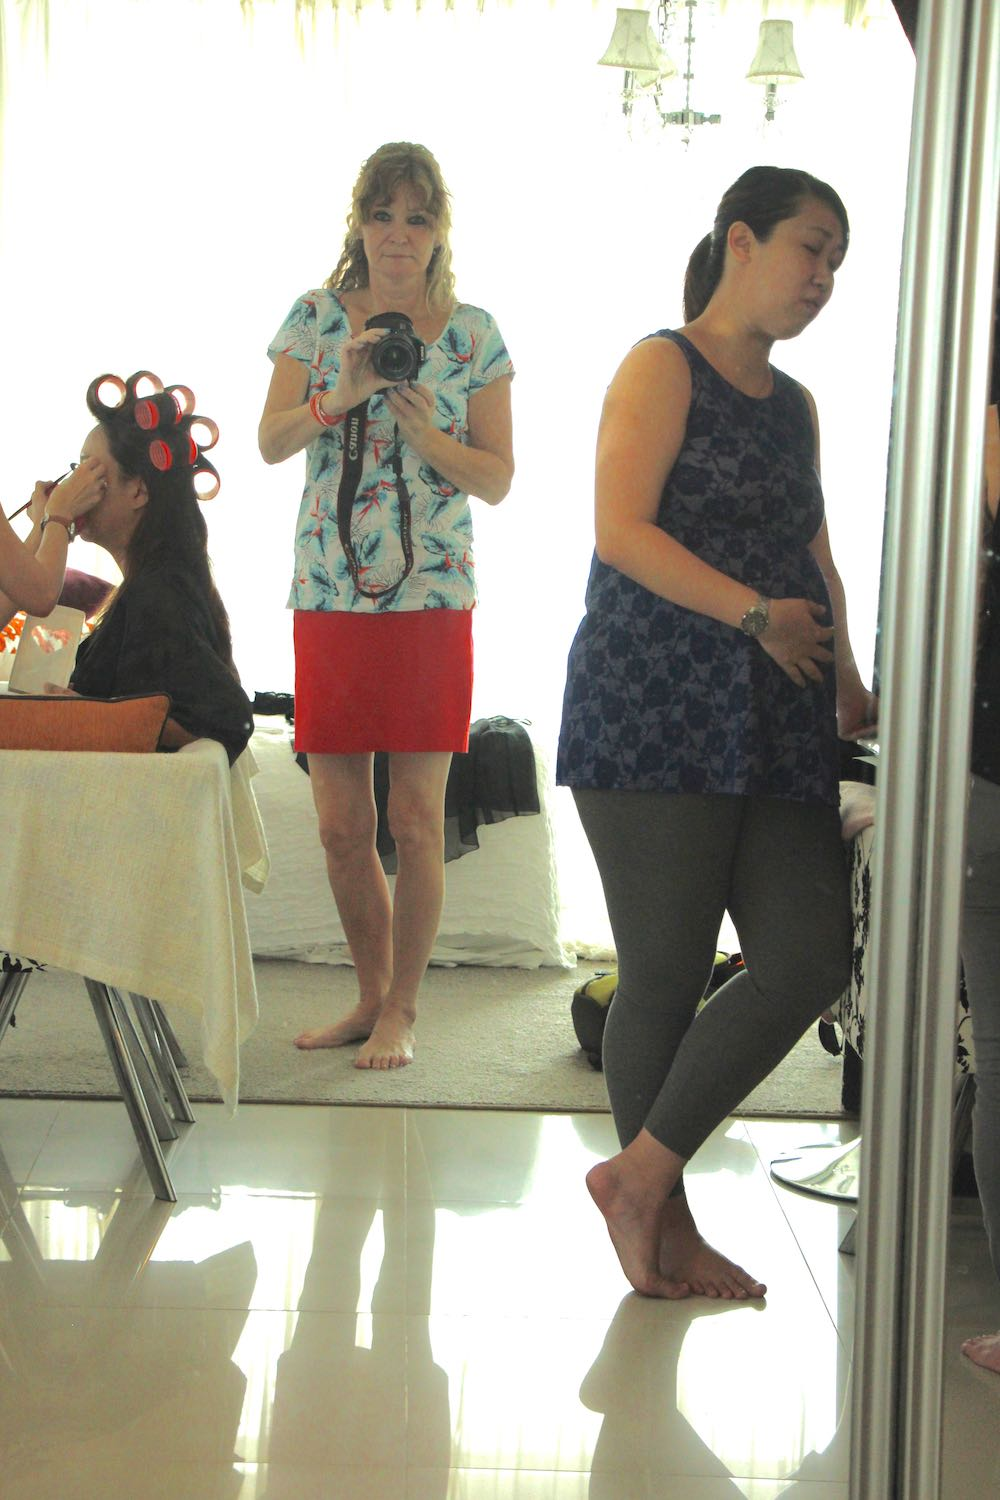 Busy preparing the photoshoot |curlytraveller.com